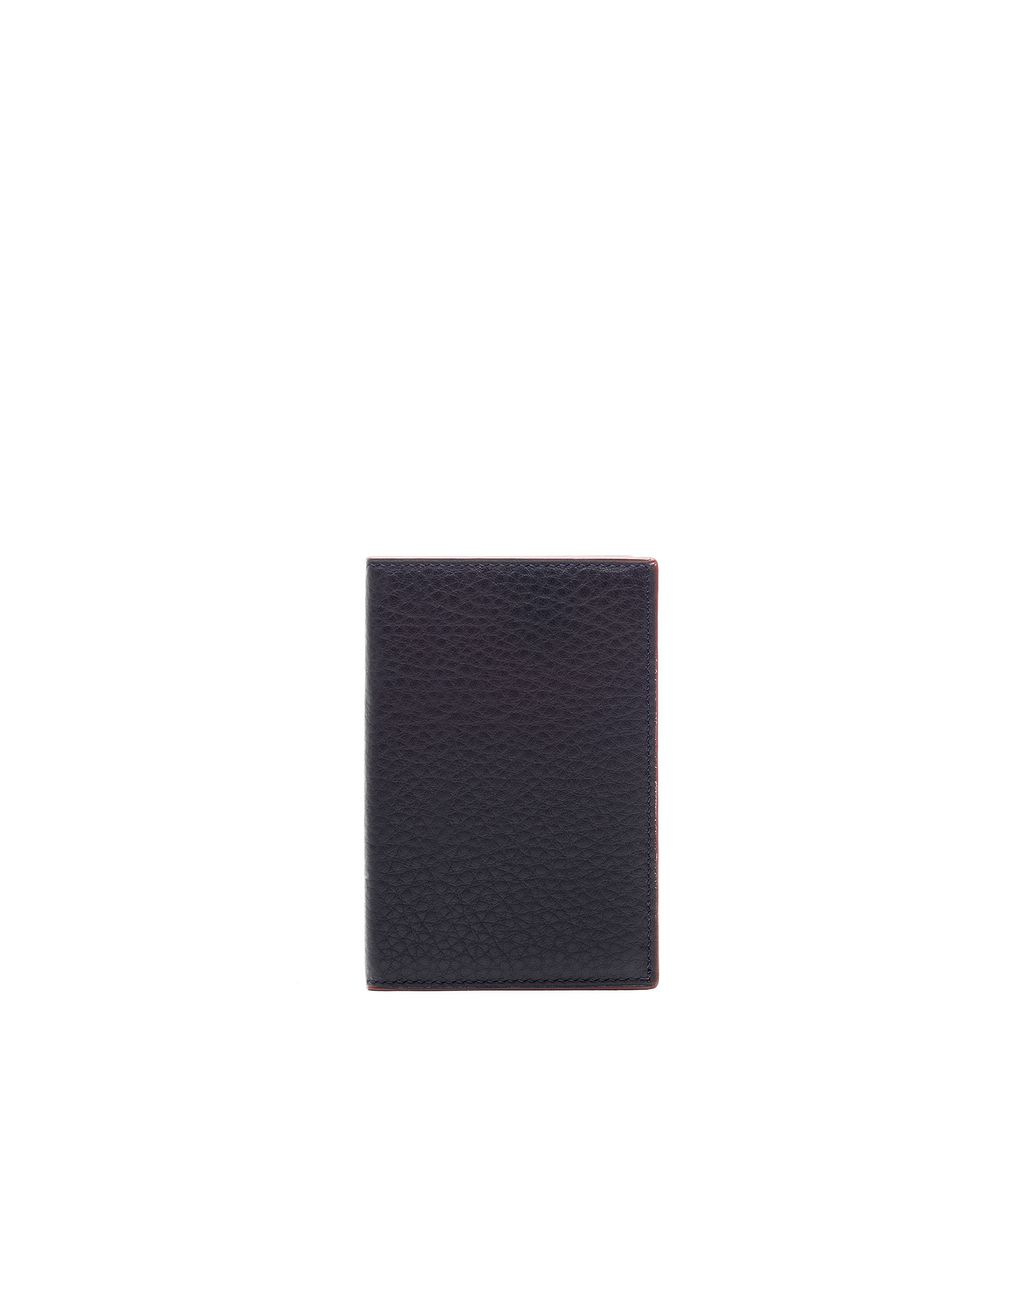 Brioni mens leather goods brioni official online store brioni leather business card holder leather goods man f reheart Choice Image